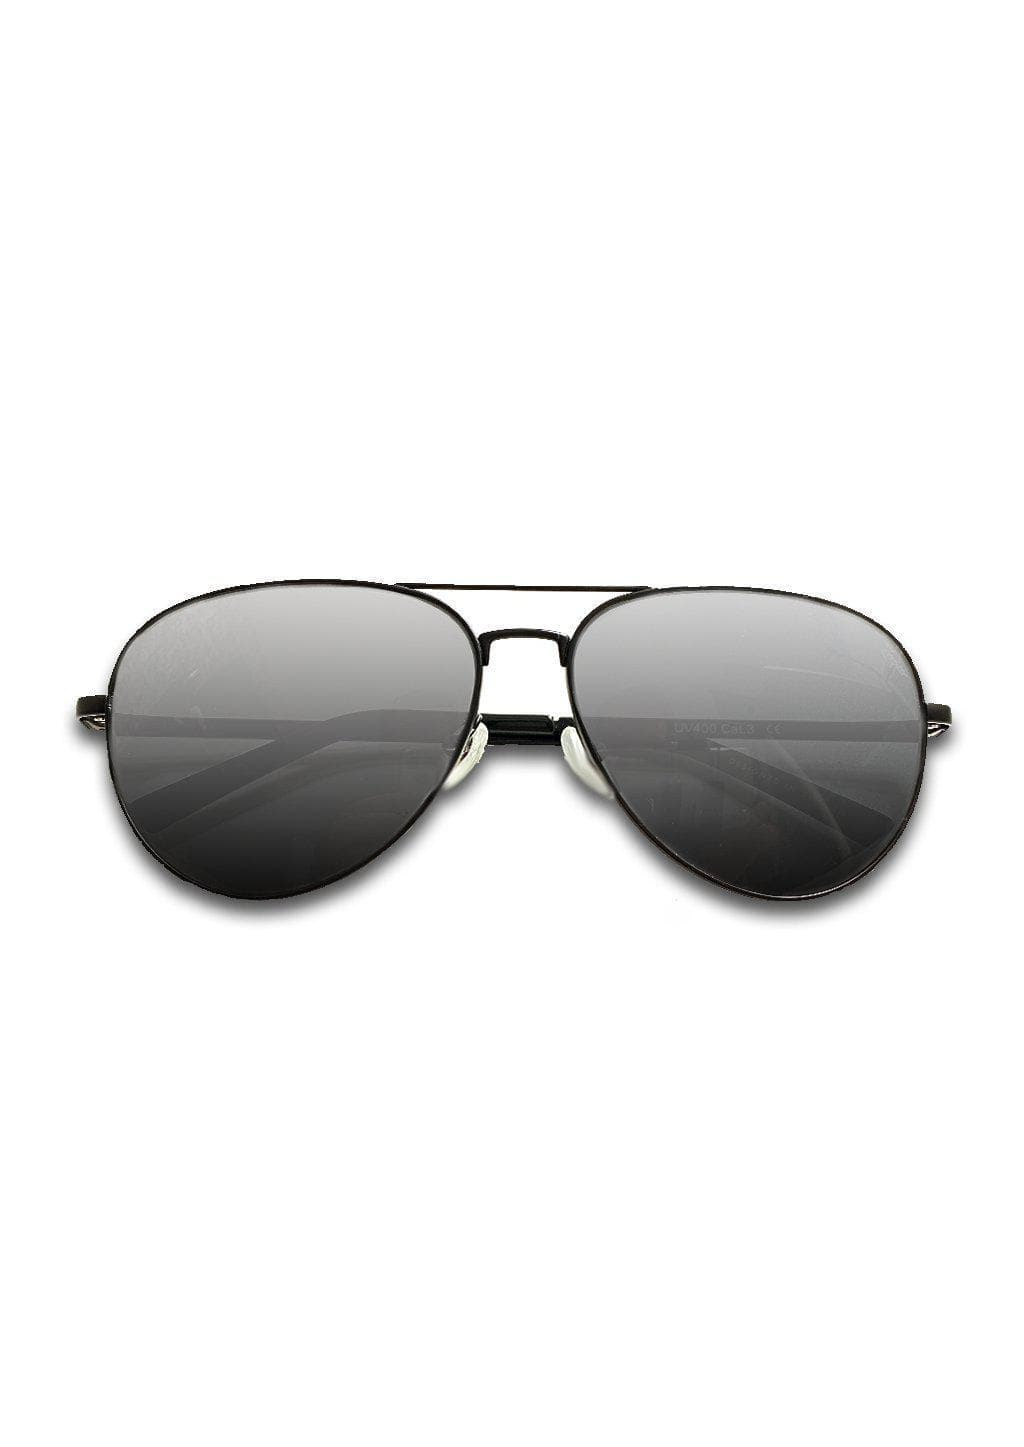 Titanium Aviator Sunglasses - TITAN - Black - Made of pure titanium.